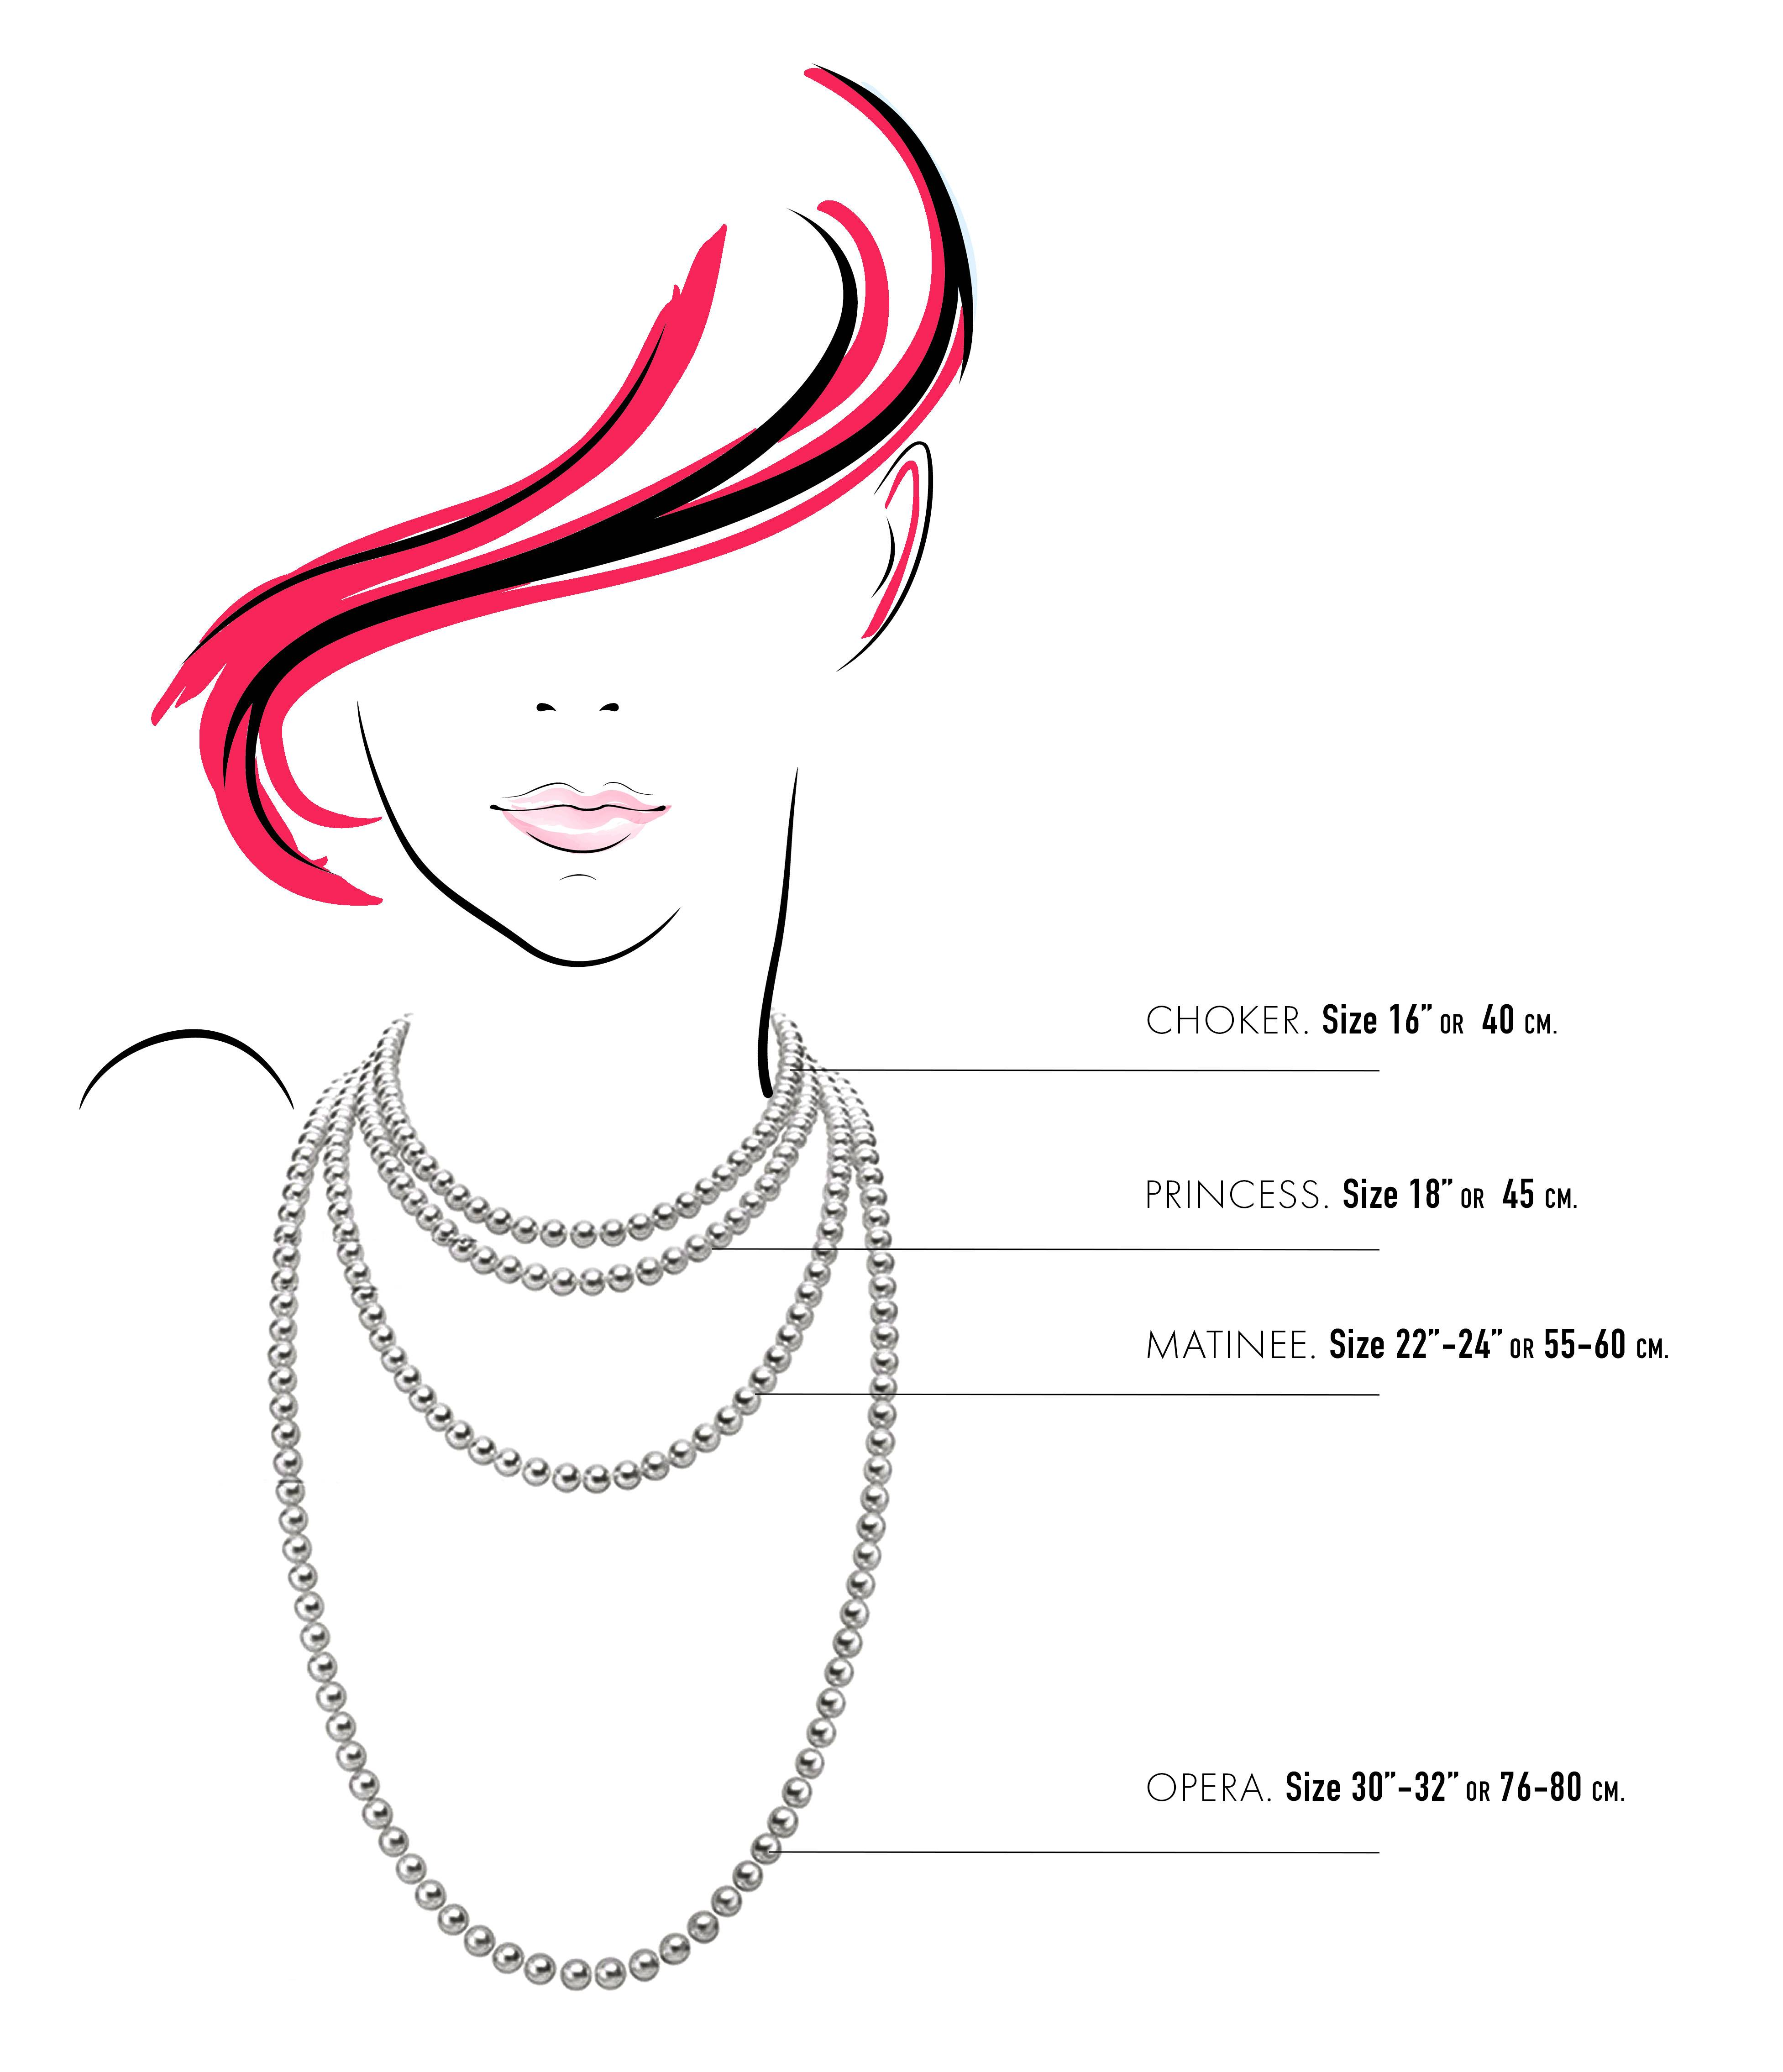 Necklaces Sizer Guide